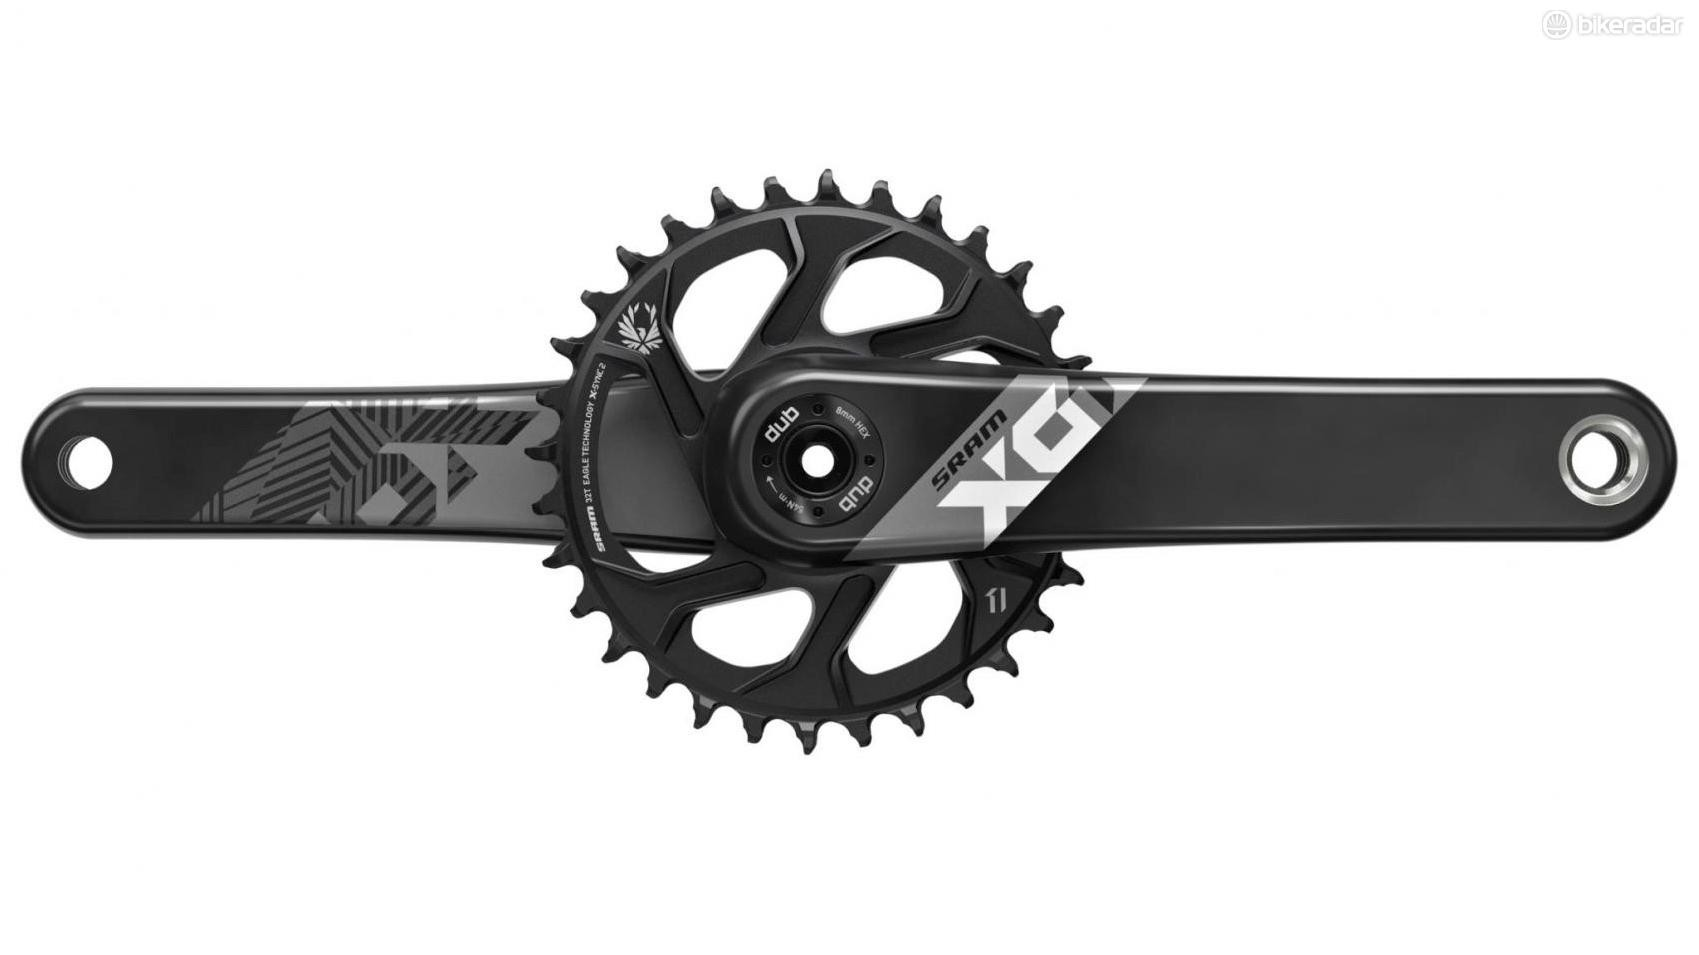 The X01 crank should appeal to trail and enduro riders